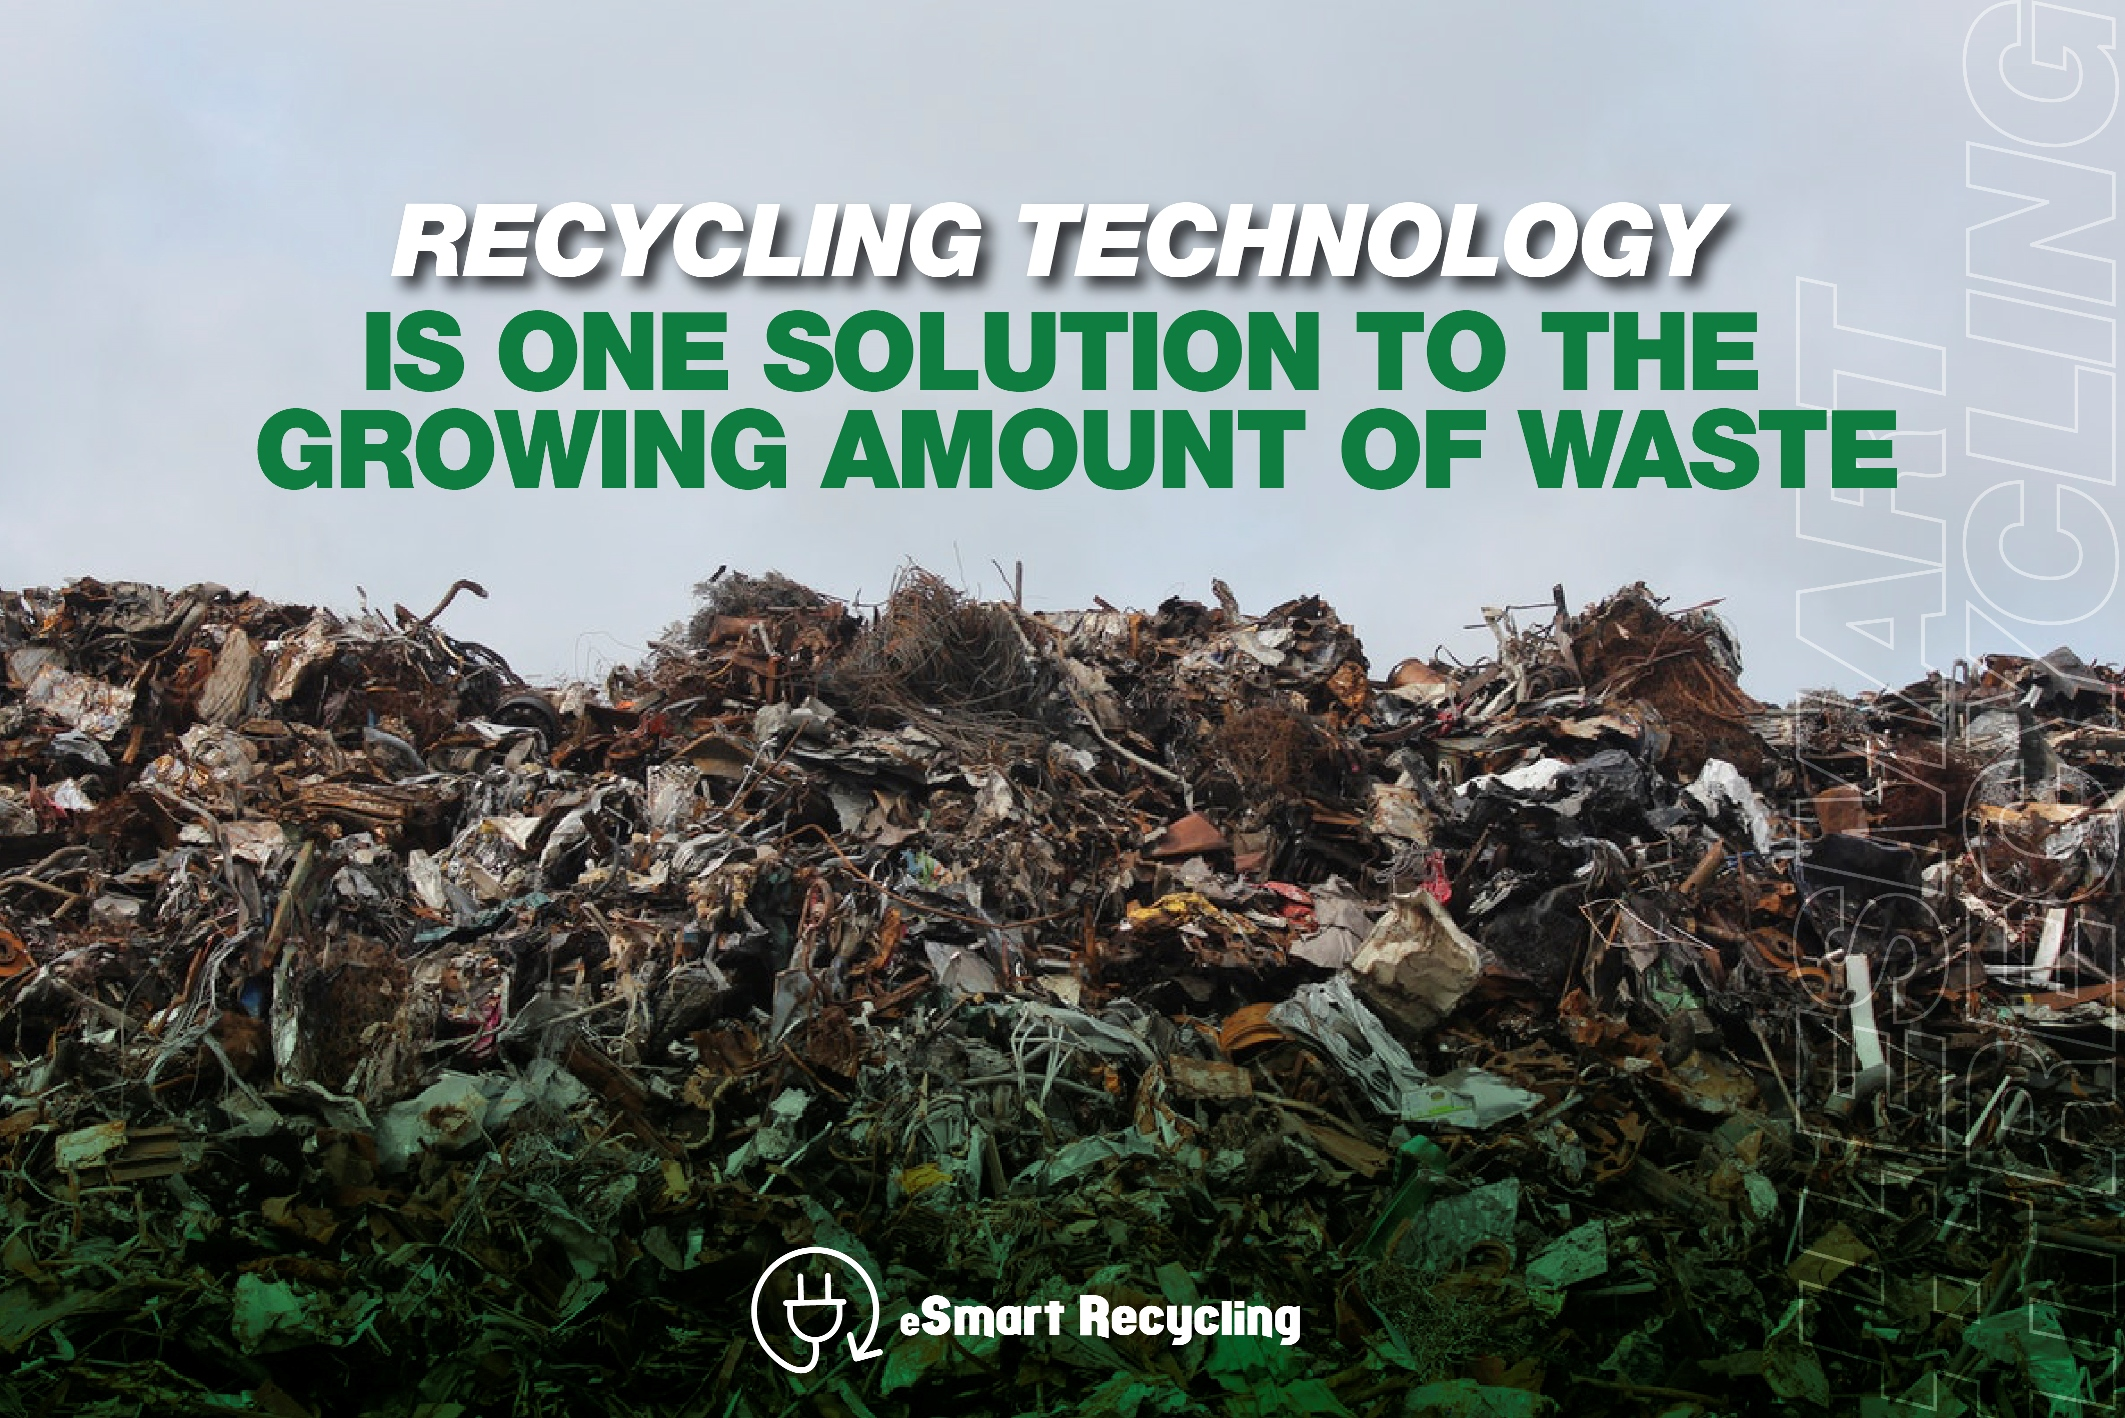 Recycling technology